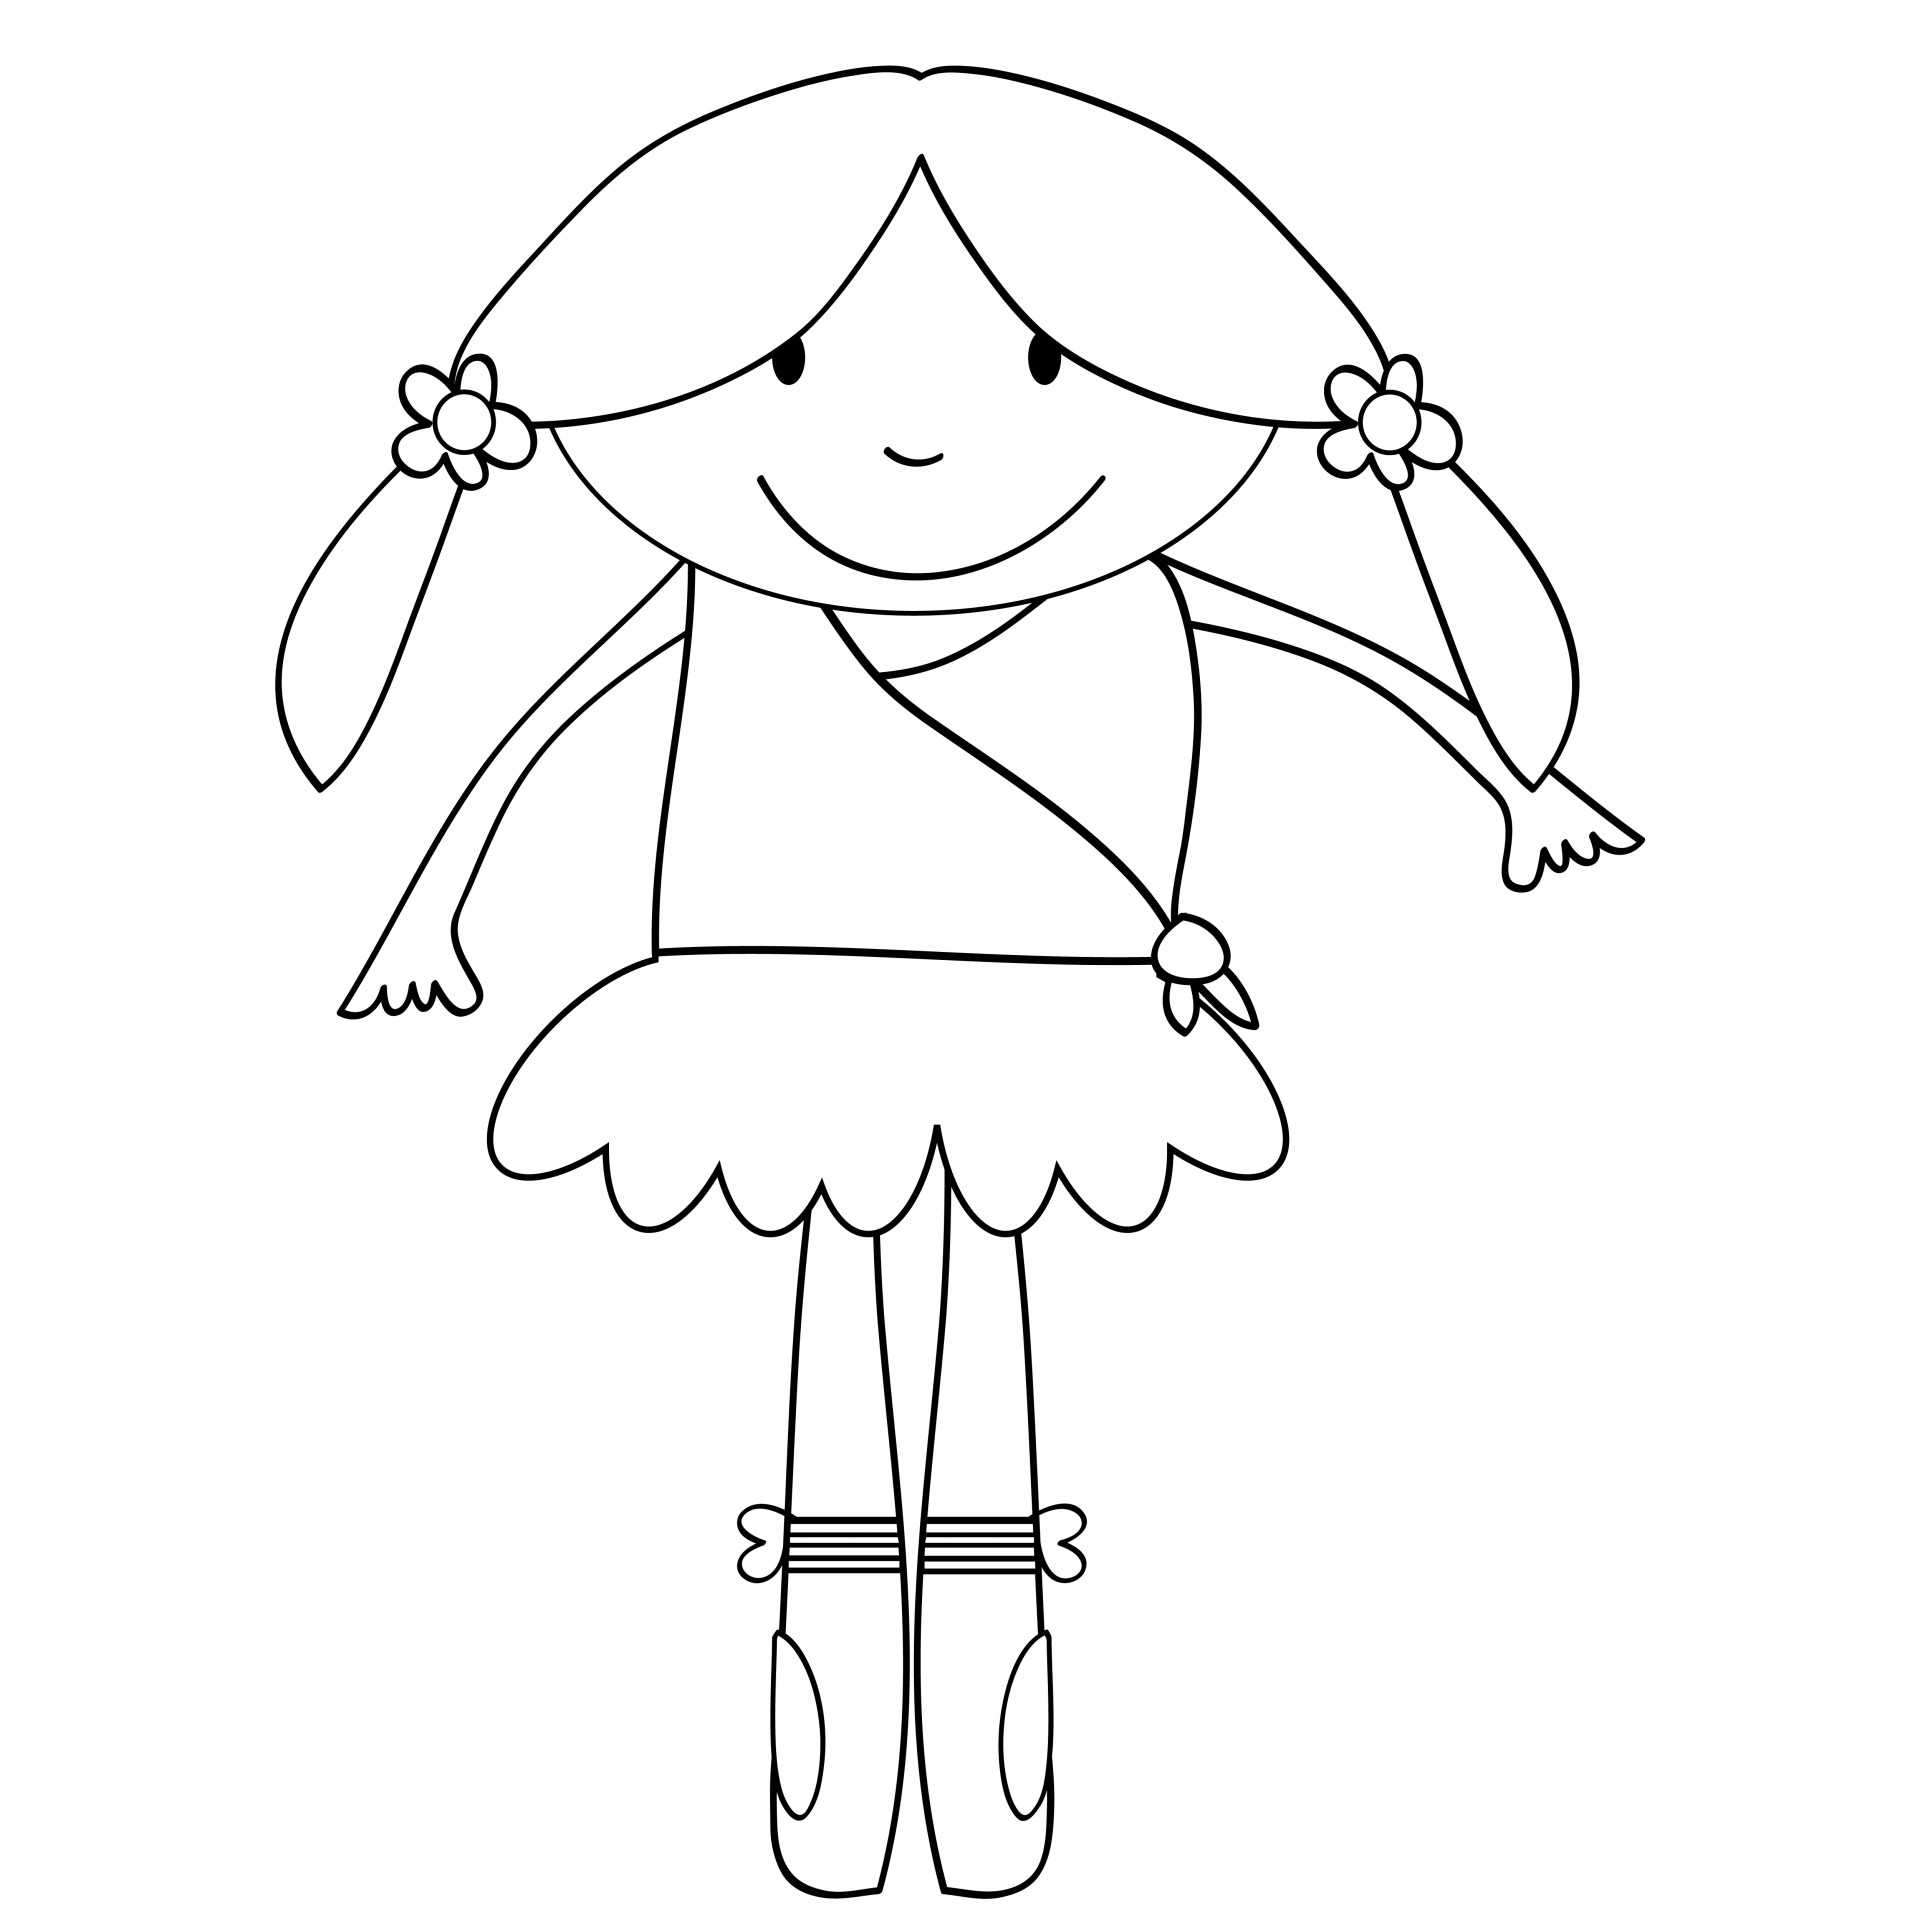 1920x1920 Ballerina Kids Coloring Page Free Stock Photo